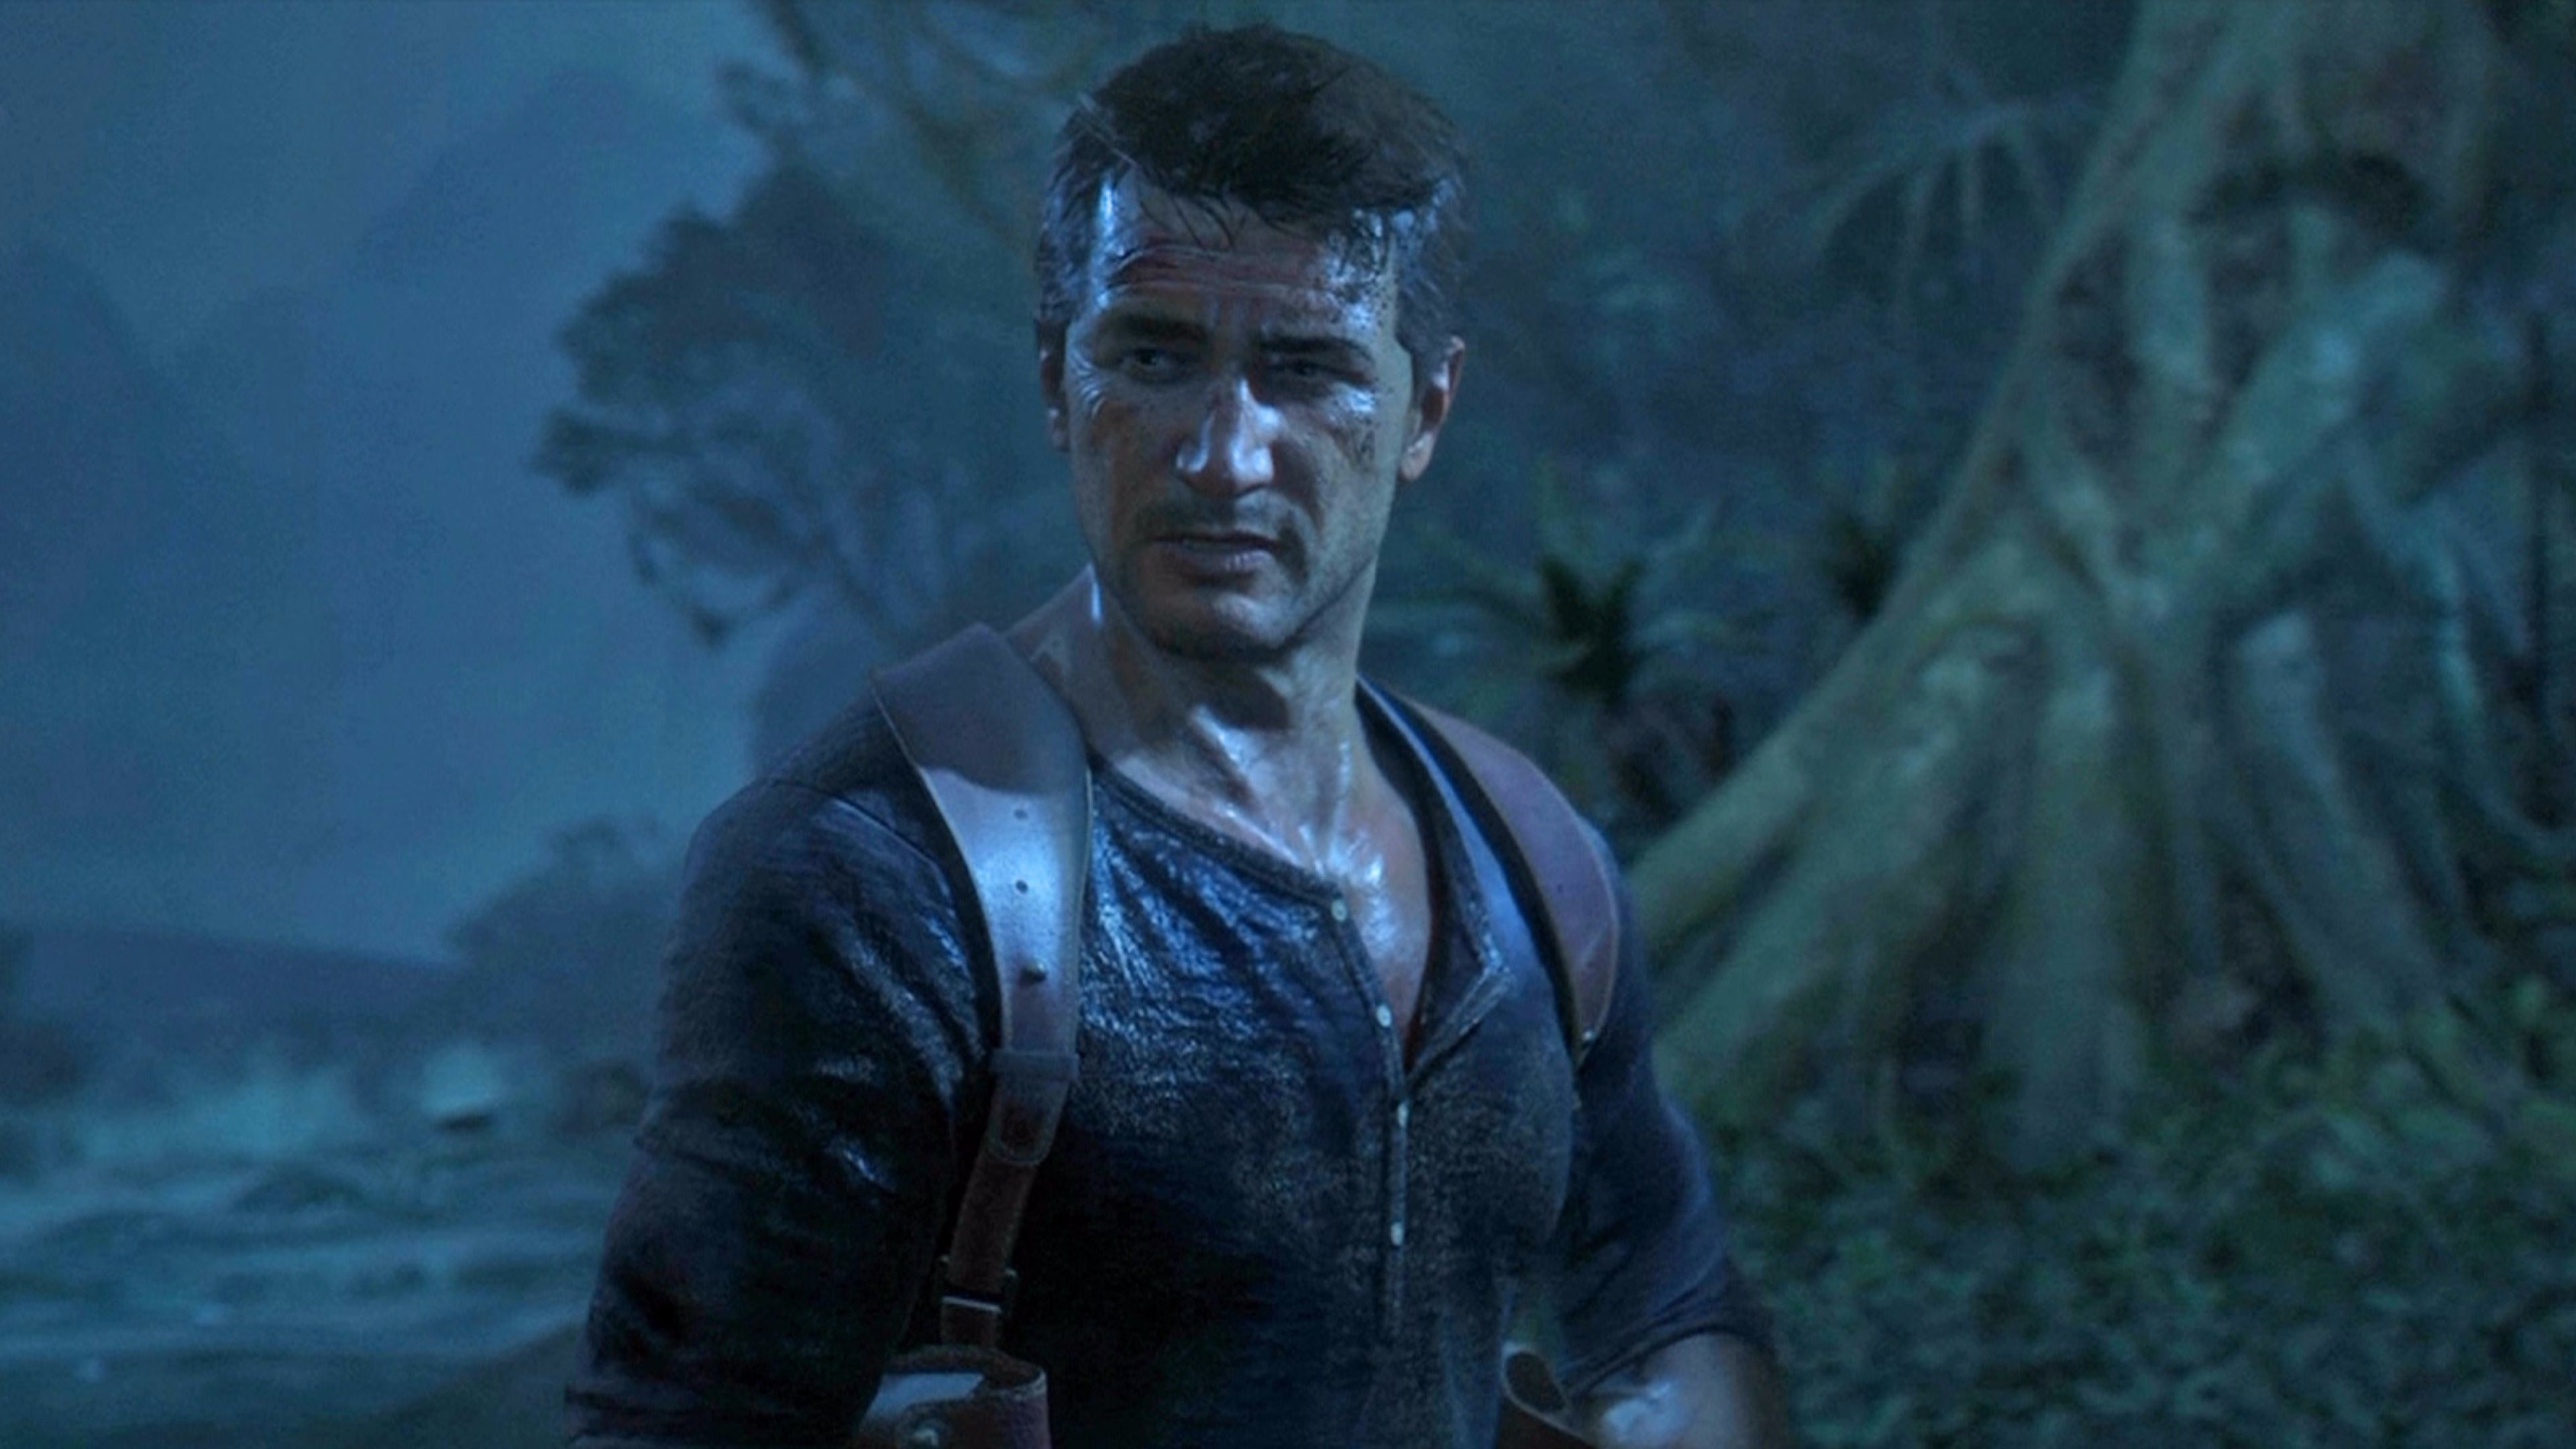 3840x2160 Free Download Uncharted 4 A Thief's End 4K Wallpaper